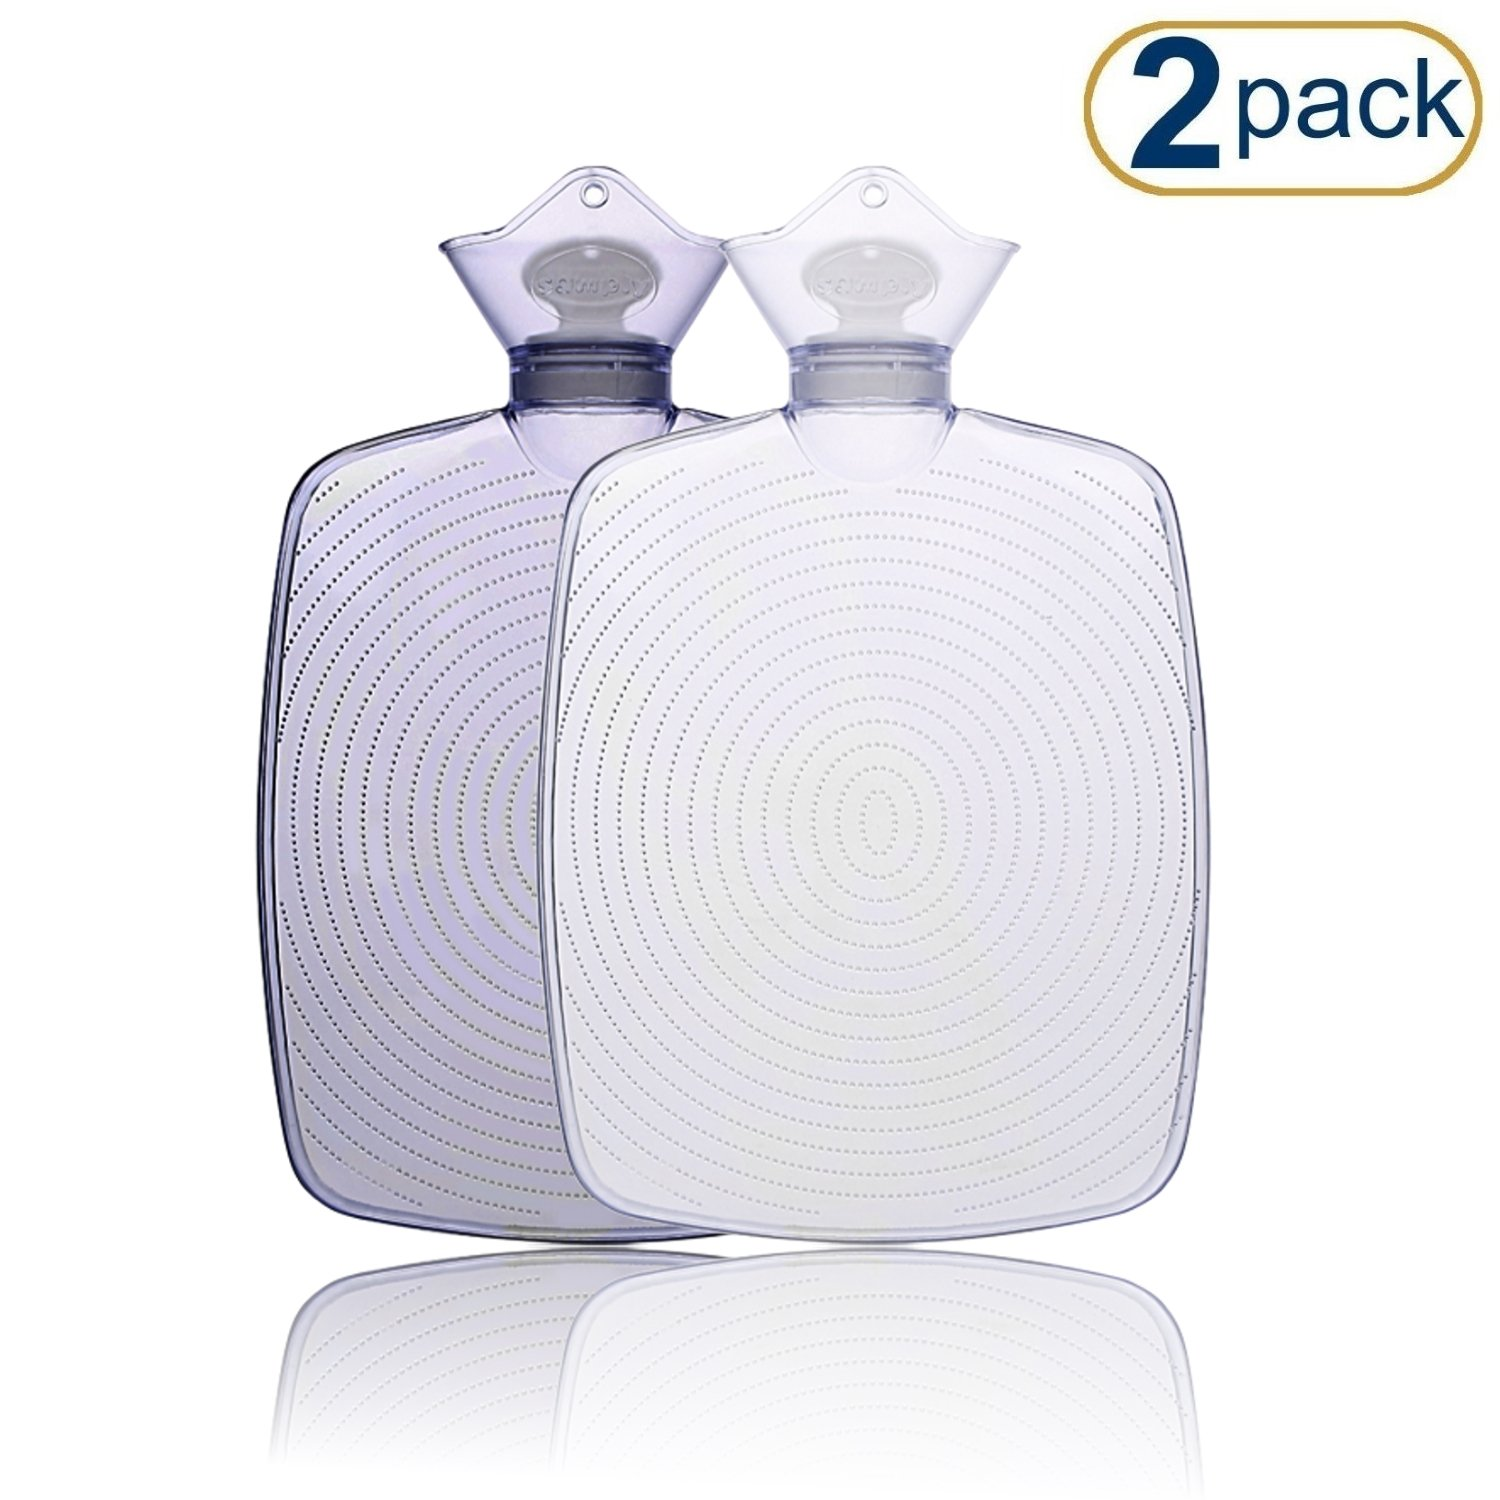 Hot Water Bottle (2Pack) – Comfortably Sleep with Maximum Warmth – Soothe All Types of Pain & Swelling – Simply Heat Water & Fill Bag to Begin Relief – Use as a Cold Water Bottle & Ice Pack